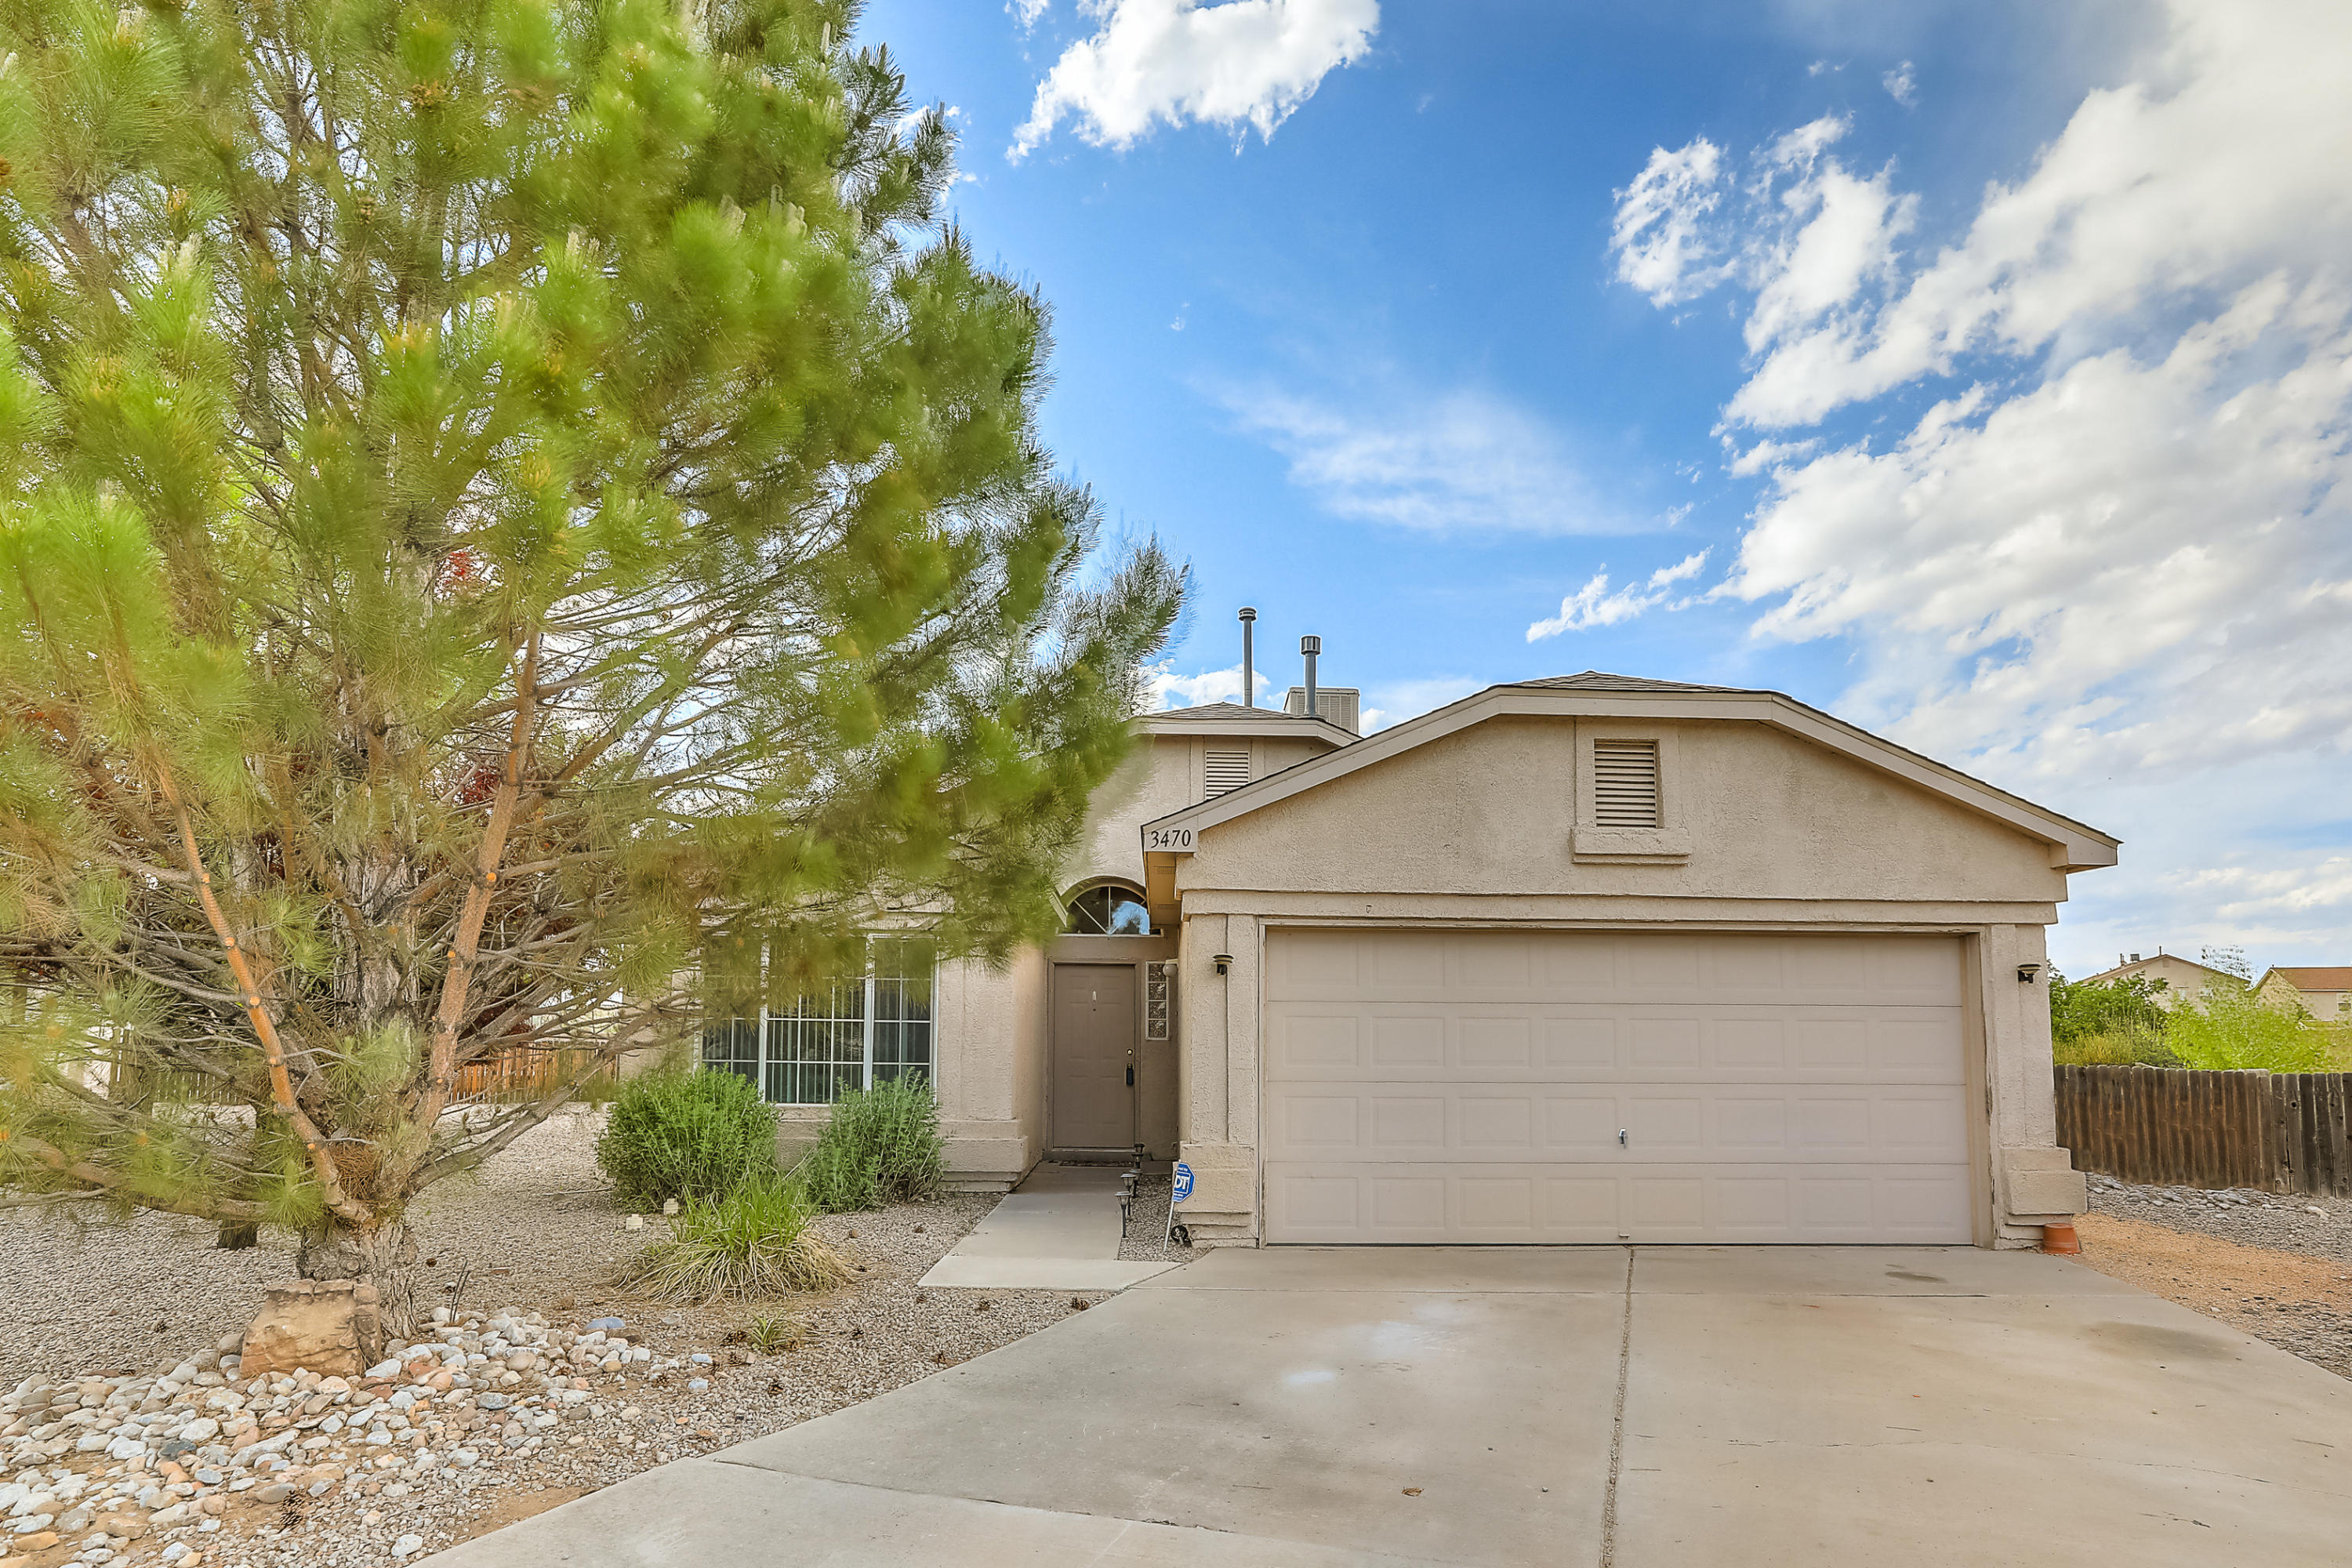 3470 NE Misty Meadows Drive, Rio Rancho in Sandoval County, NM 87144 Home for Sale